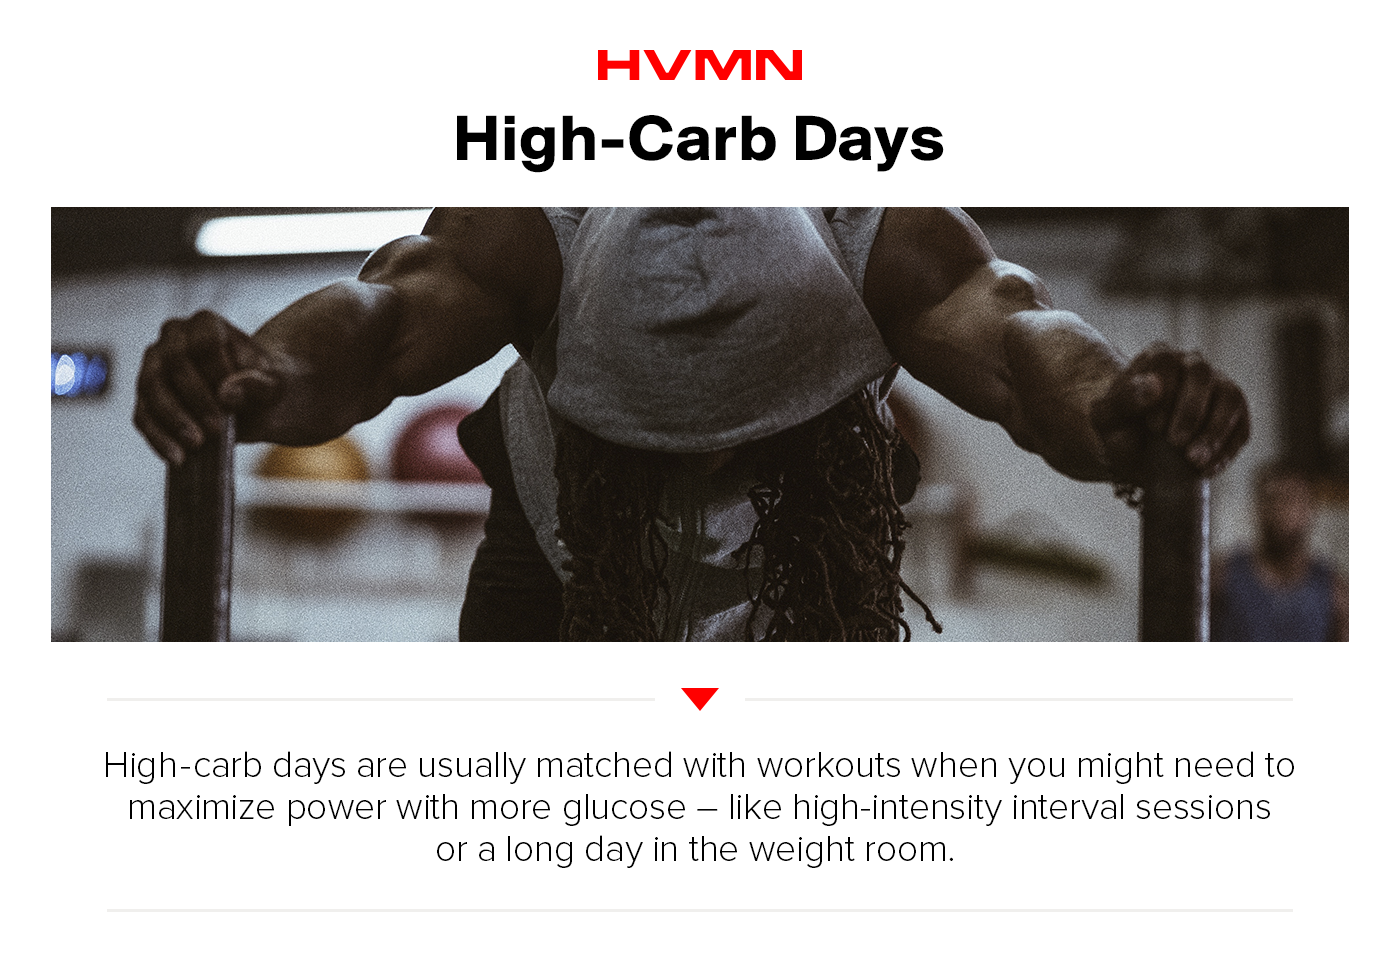 An image of a man at the gym showing how high-carb days can help performance